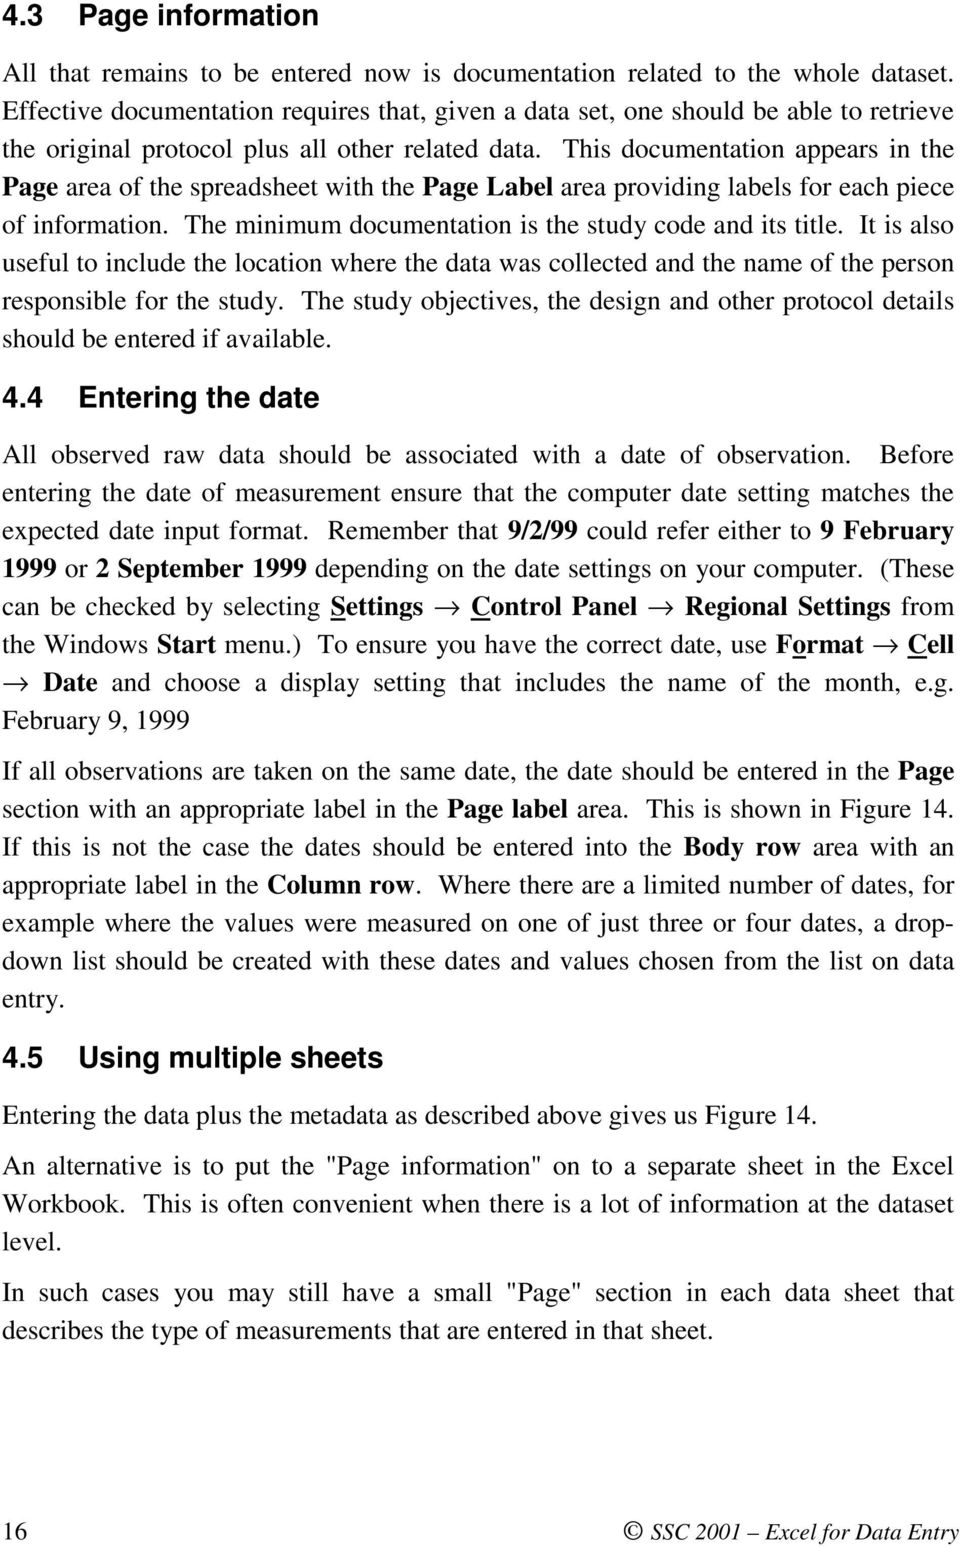 This documentation appears in the Page area of the spreadsheet with the Page Label area providing labels for each piece of information. The minimum documentation is the study code and its title.